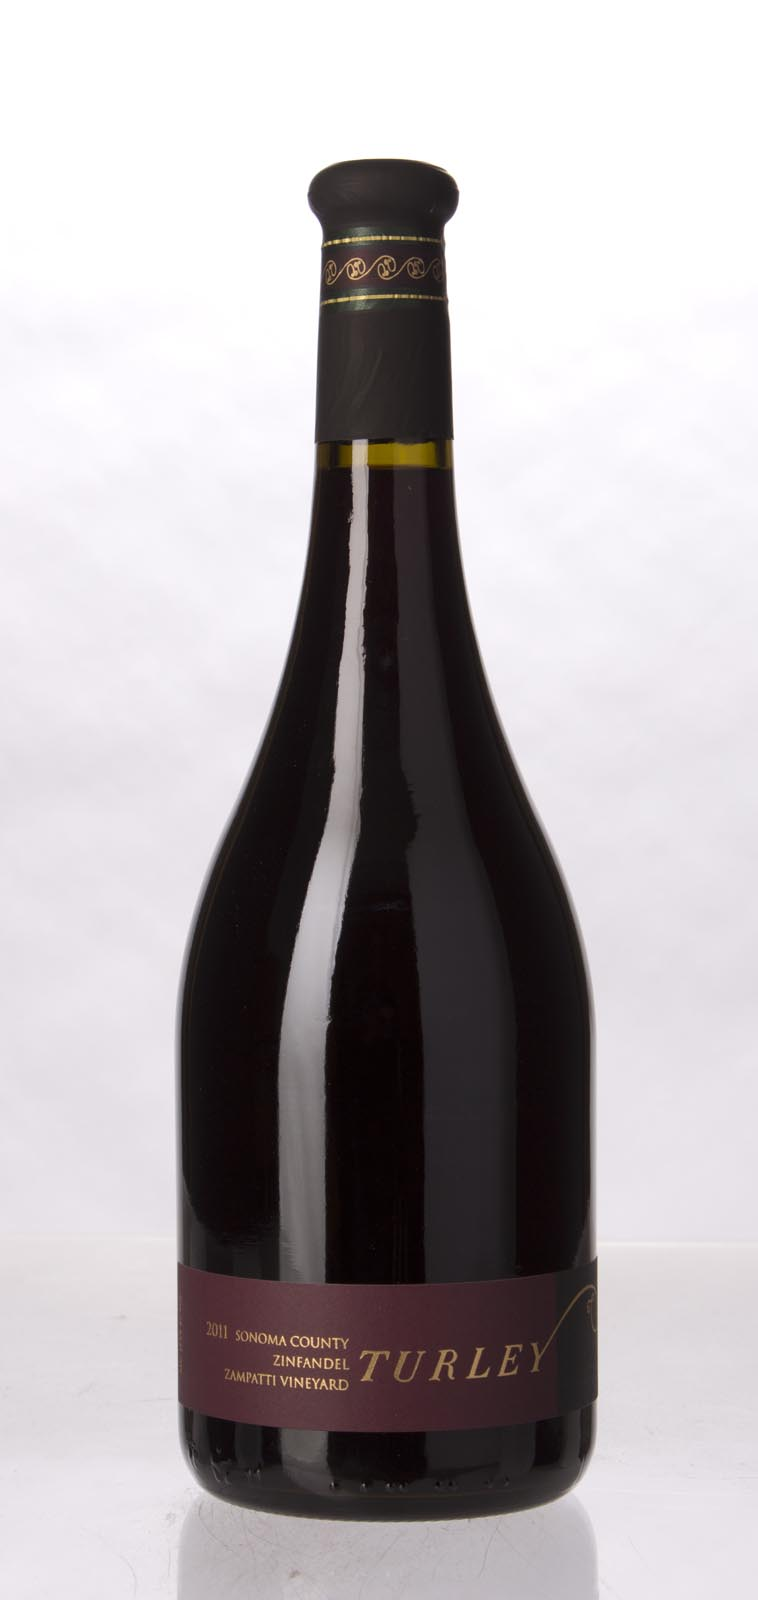 Turley Wine Cellars Zinfandel Zampatti Vineyard 2011, 750mL (WA91-93) from The BPW - Merchants of rare and fine wines.